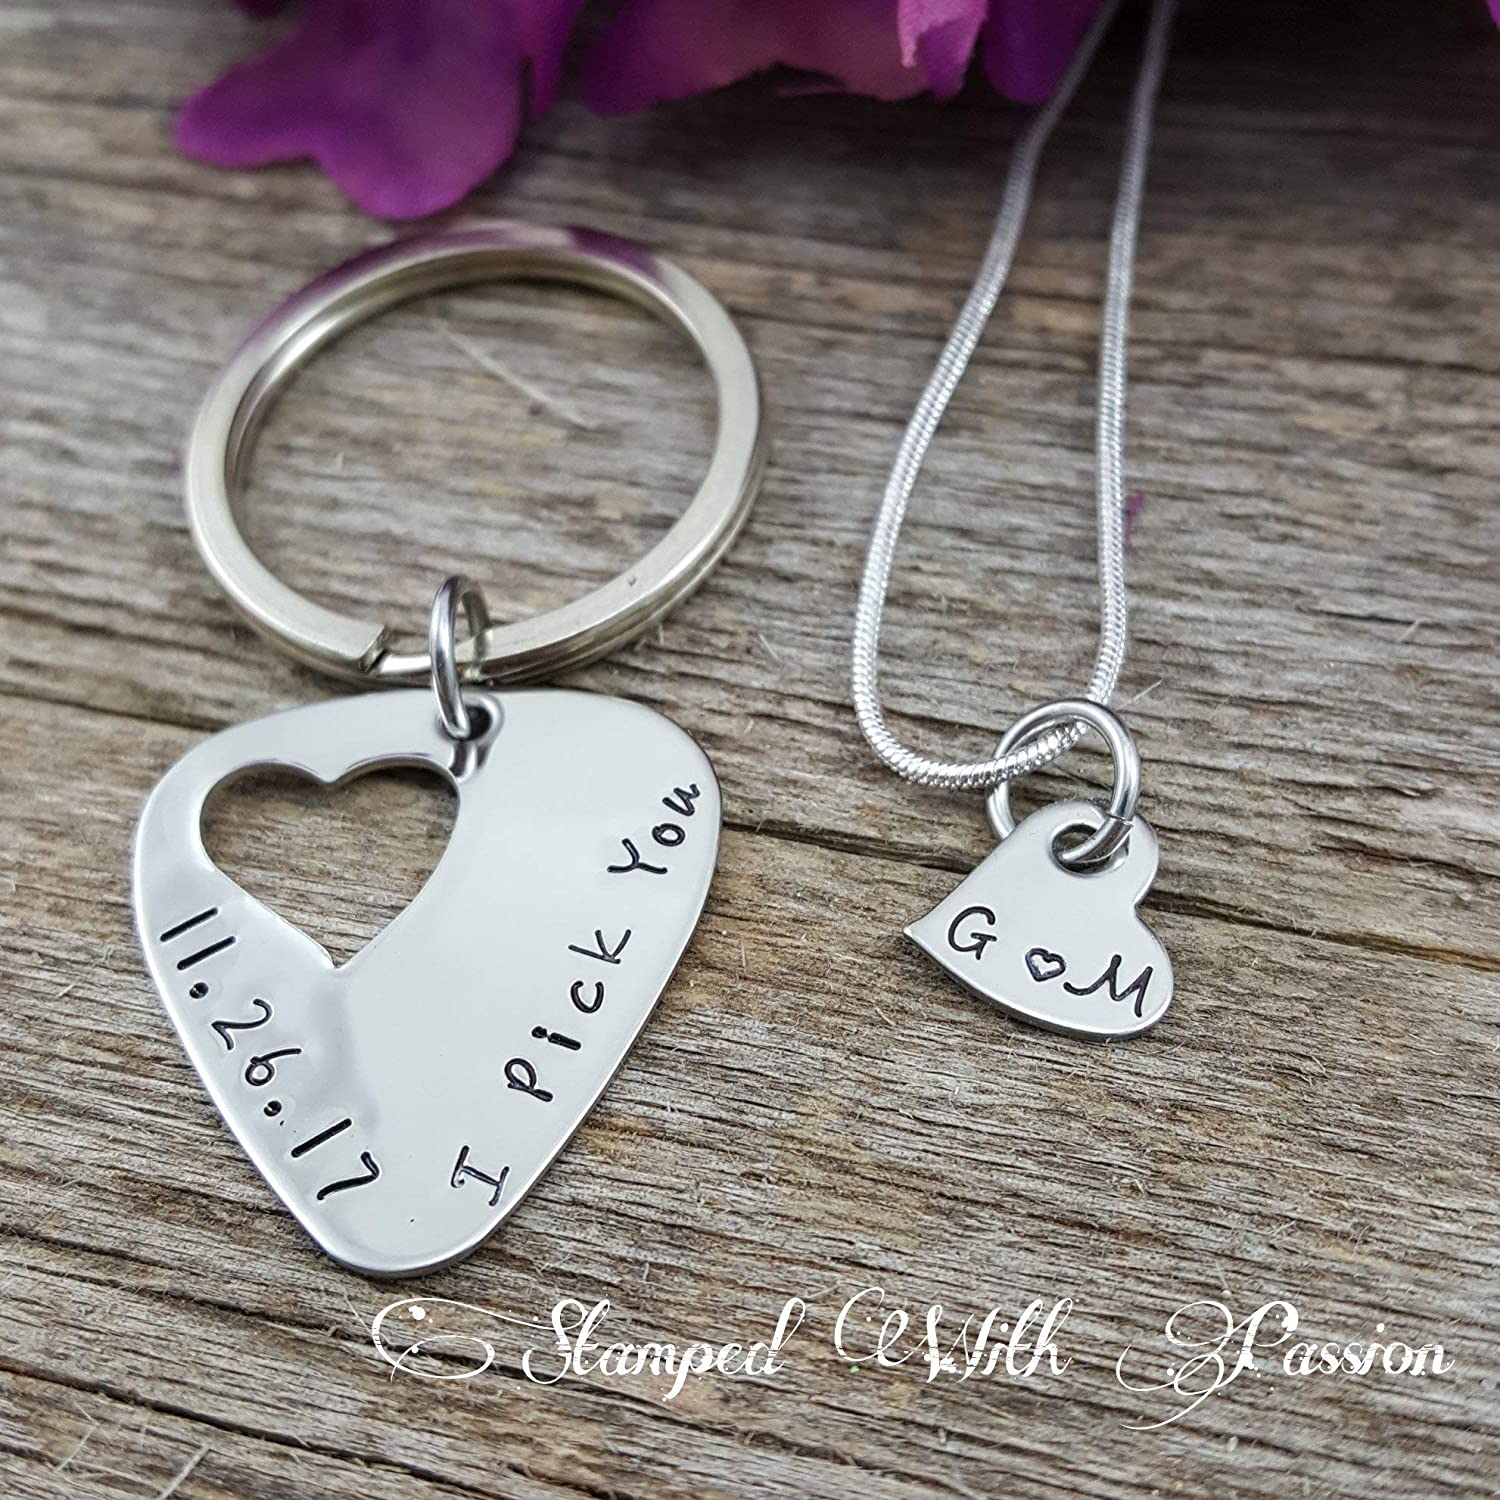 Guitar pick Keychain and necklace set hand stamped - I pick you with date - Couples Anniversary Jewelry Set - Gift for him - Gift for Her - Valentine Gift - Stainless steel handmade gifts